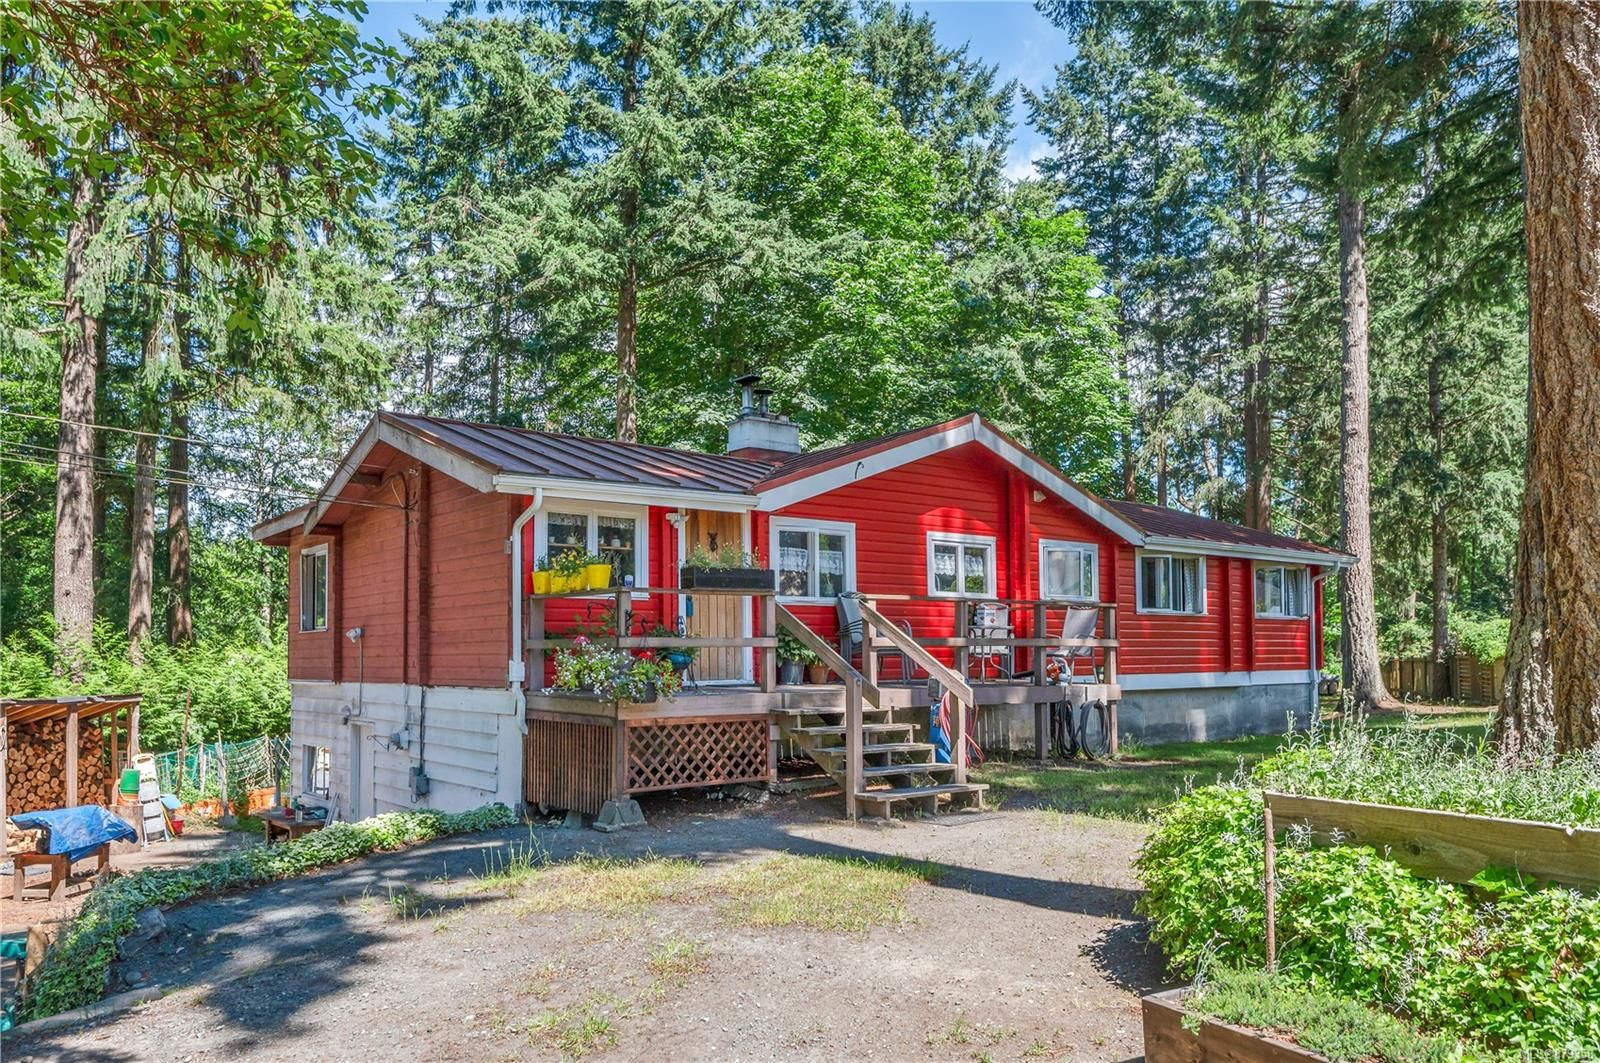 Main Photo: 4498 Colwin Rd in : CR Campbell River South House for sale (Campbell River)  : MLS®# 879358